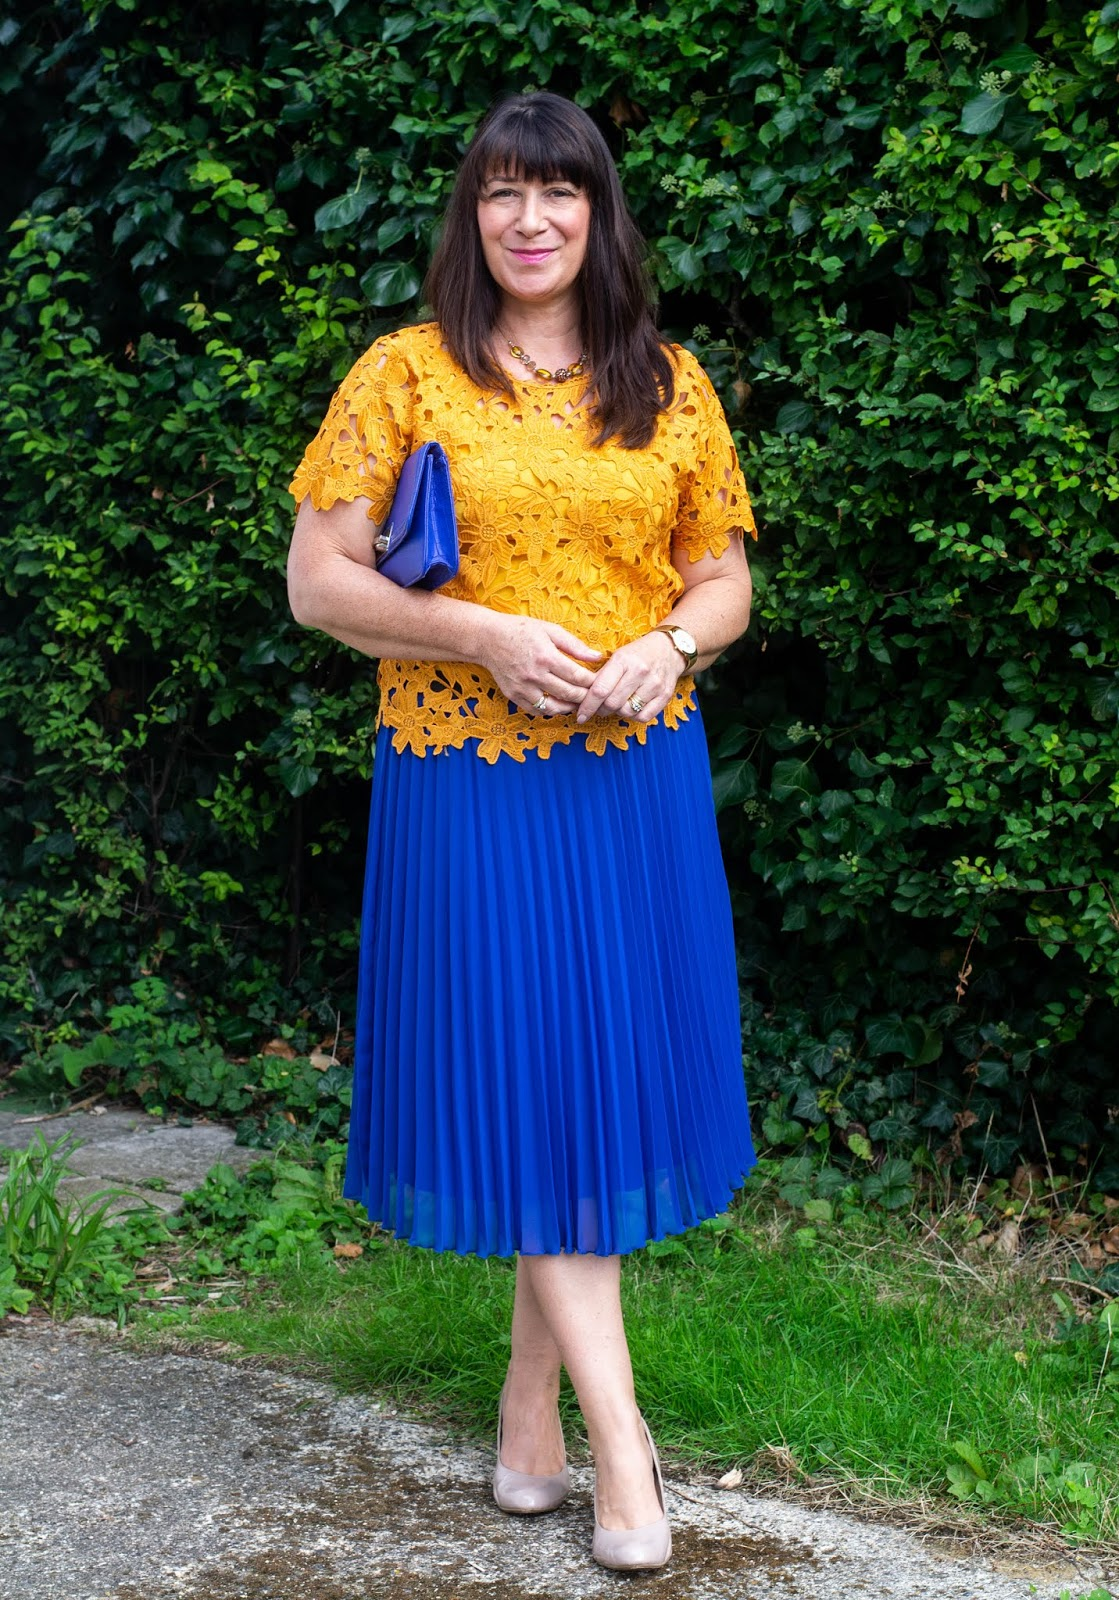 ebbed9d1c5 But no the blue pleated flouncy from Primark won hands down! I actually  styled it three ways - but here's the winner worn with a mustard lace top.